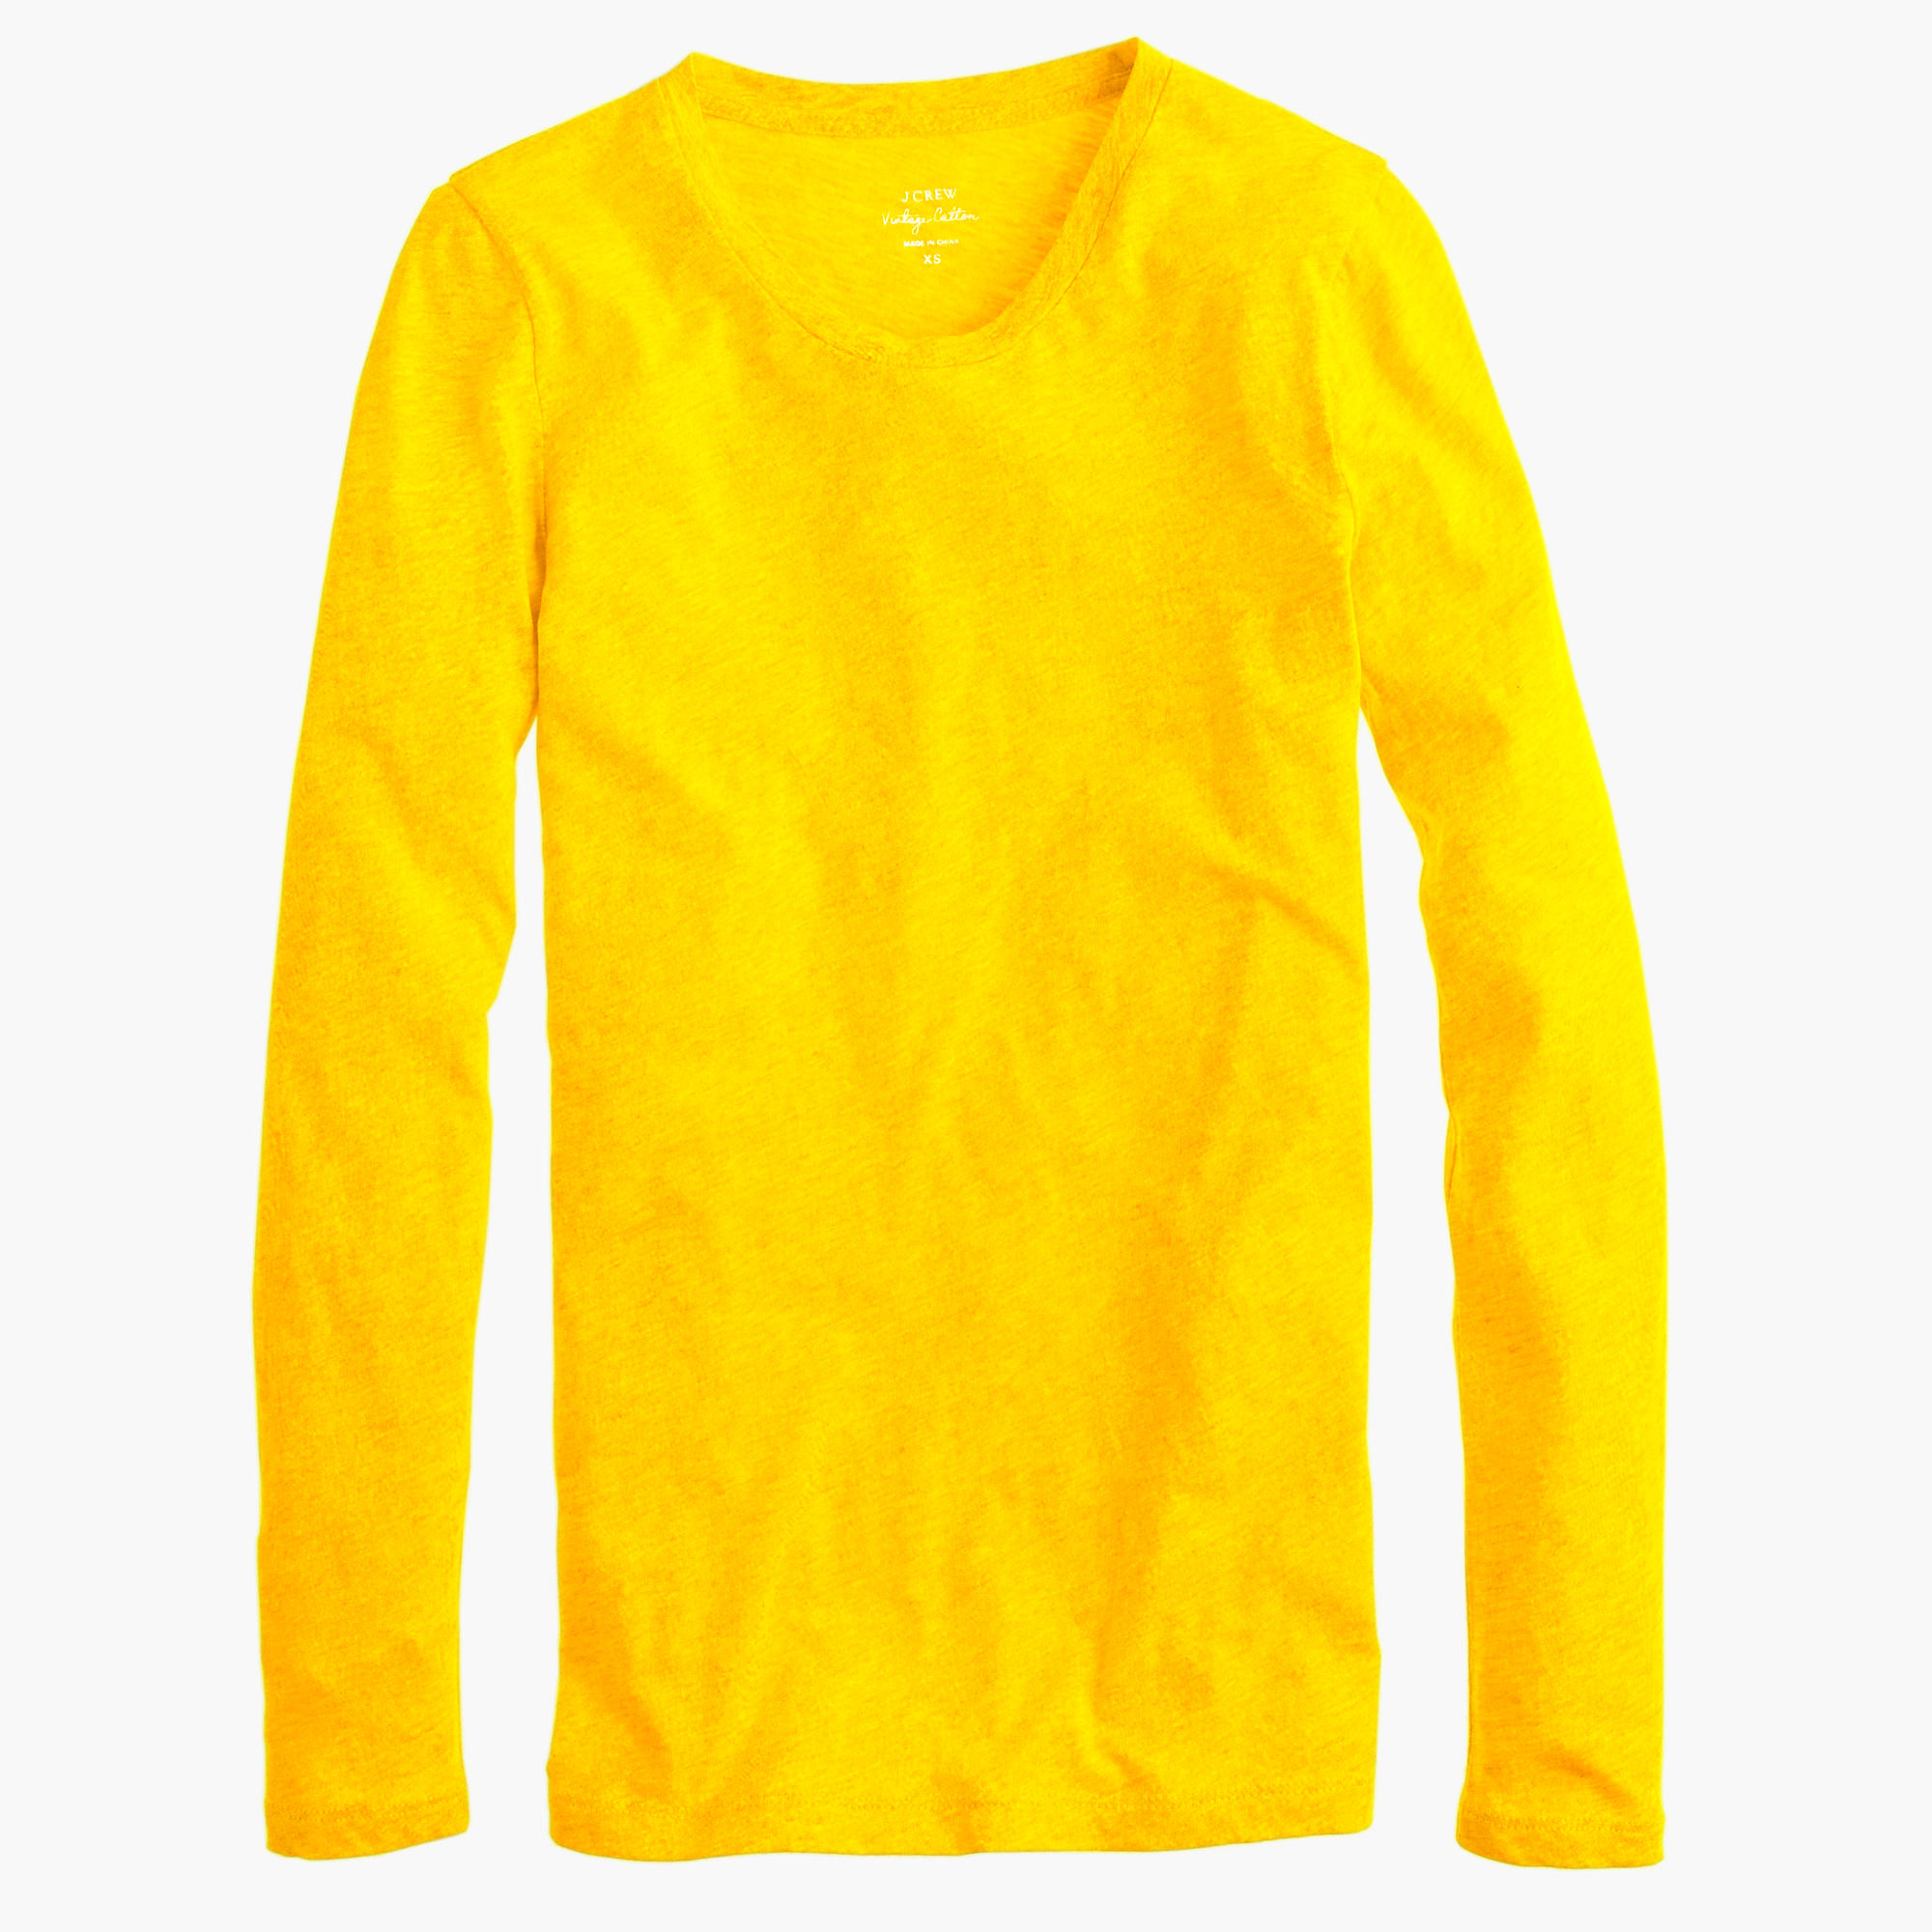 Vintage Cotton Long Sleeve T Shirt In Yellow